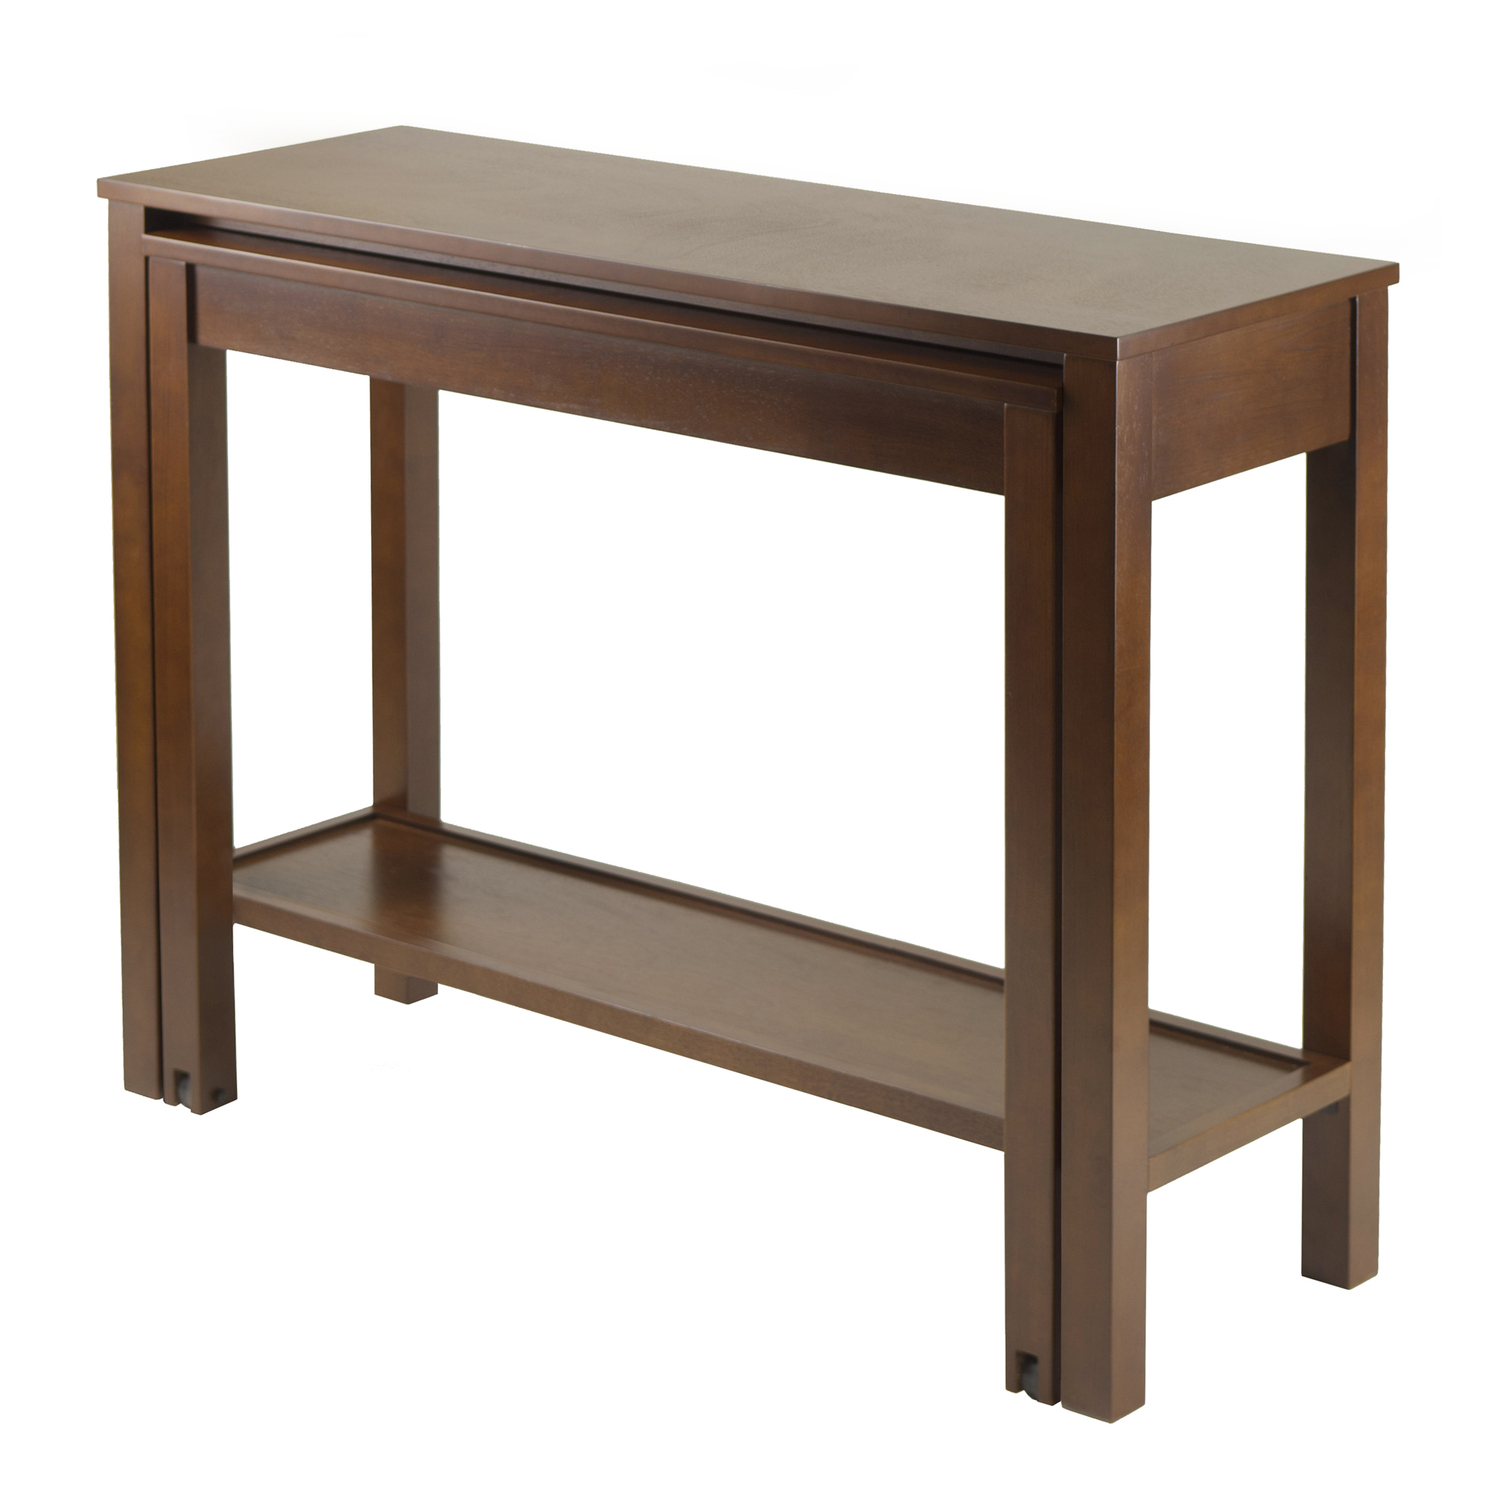 Brandon expandable console table ojcommerce for Design a table